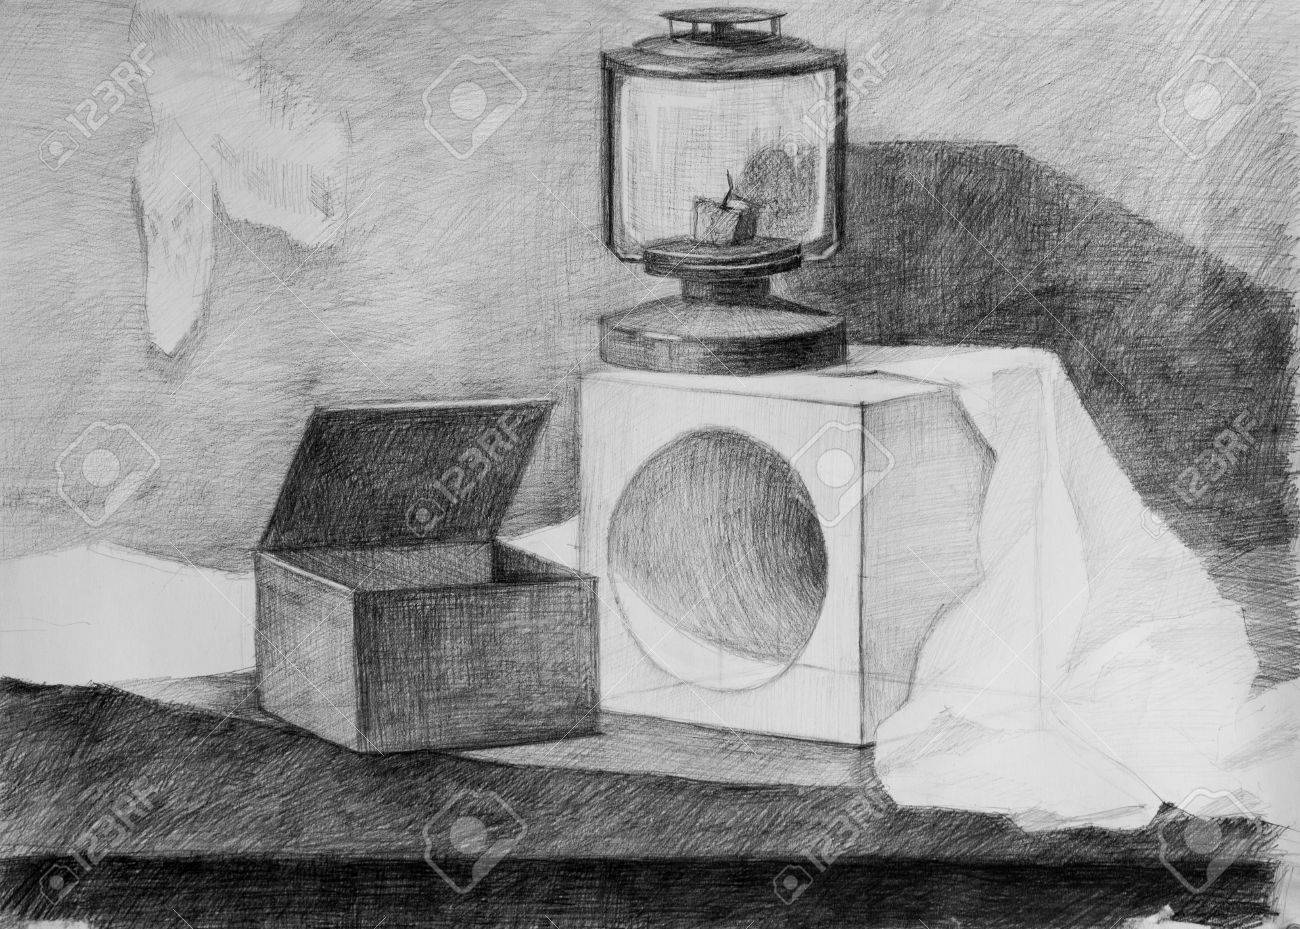 Still life pencil drawing for your design